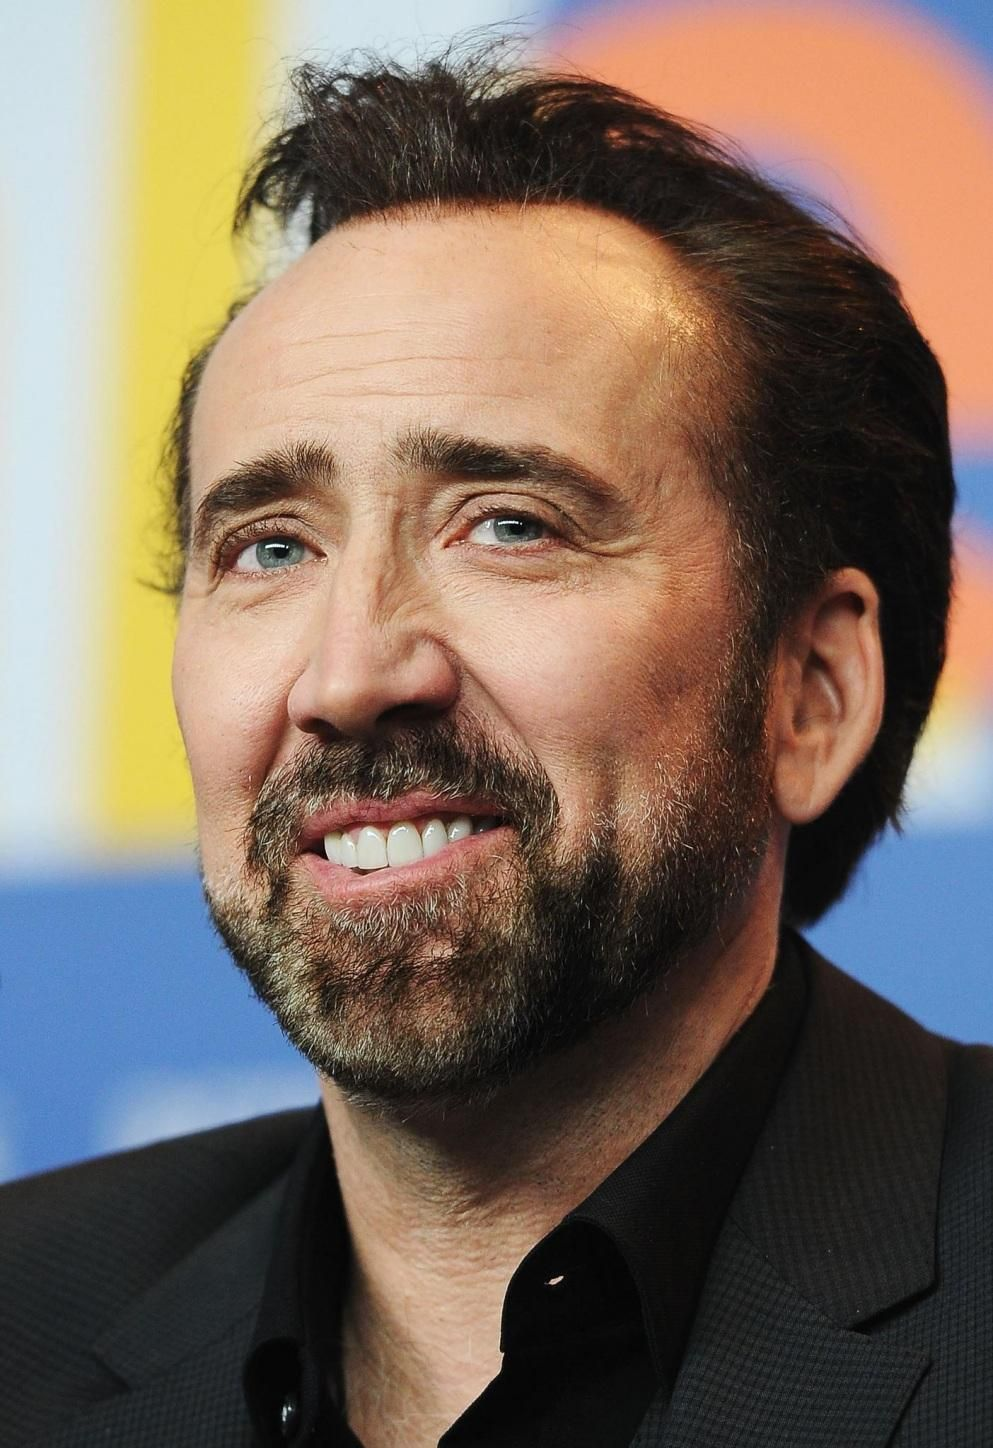 Nicolas Cage Large Picture Nicolas Cage Nicholas Cage Face Hollywood Actor